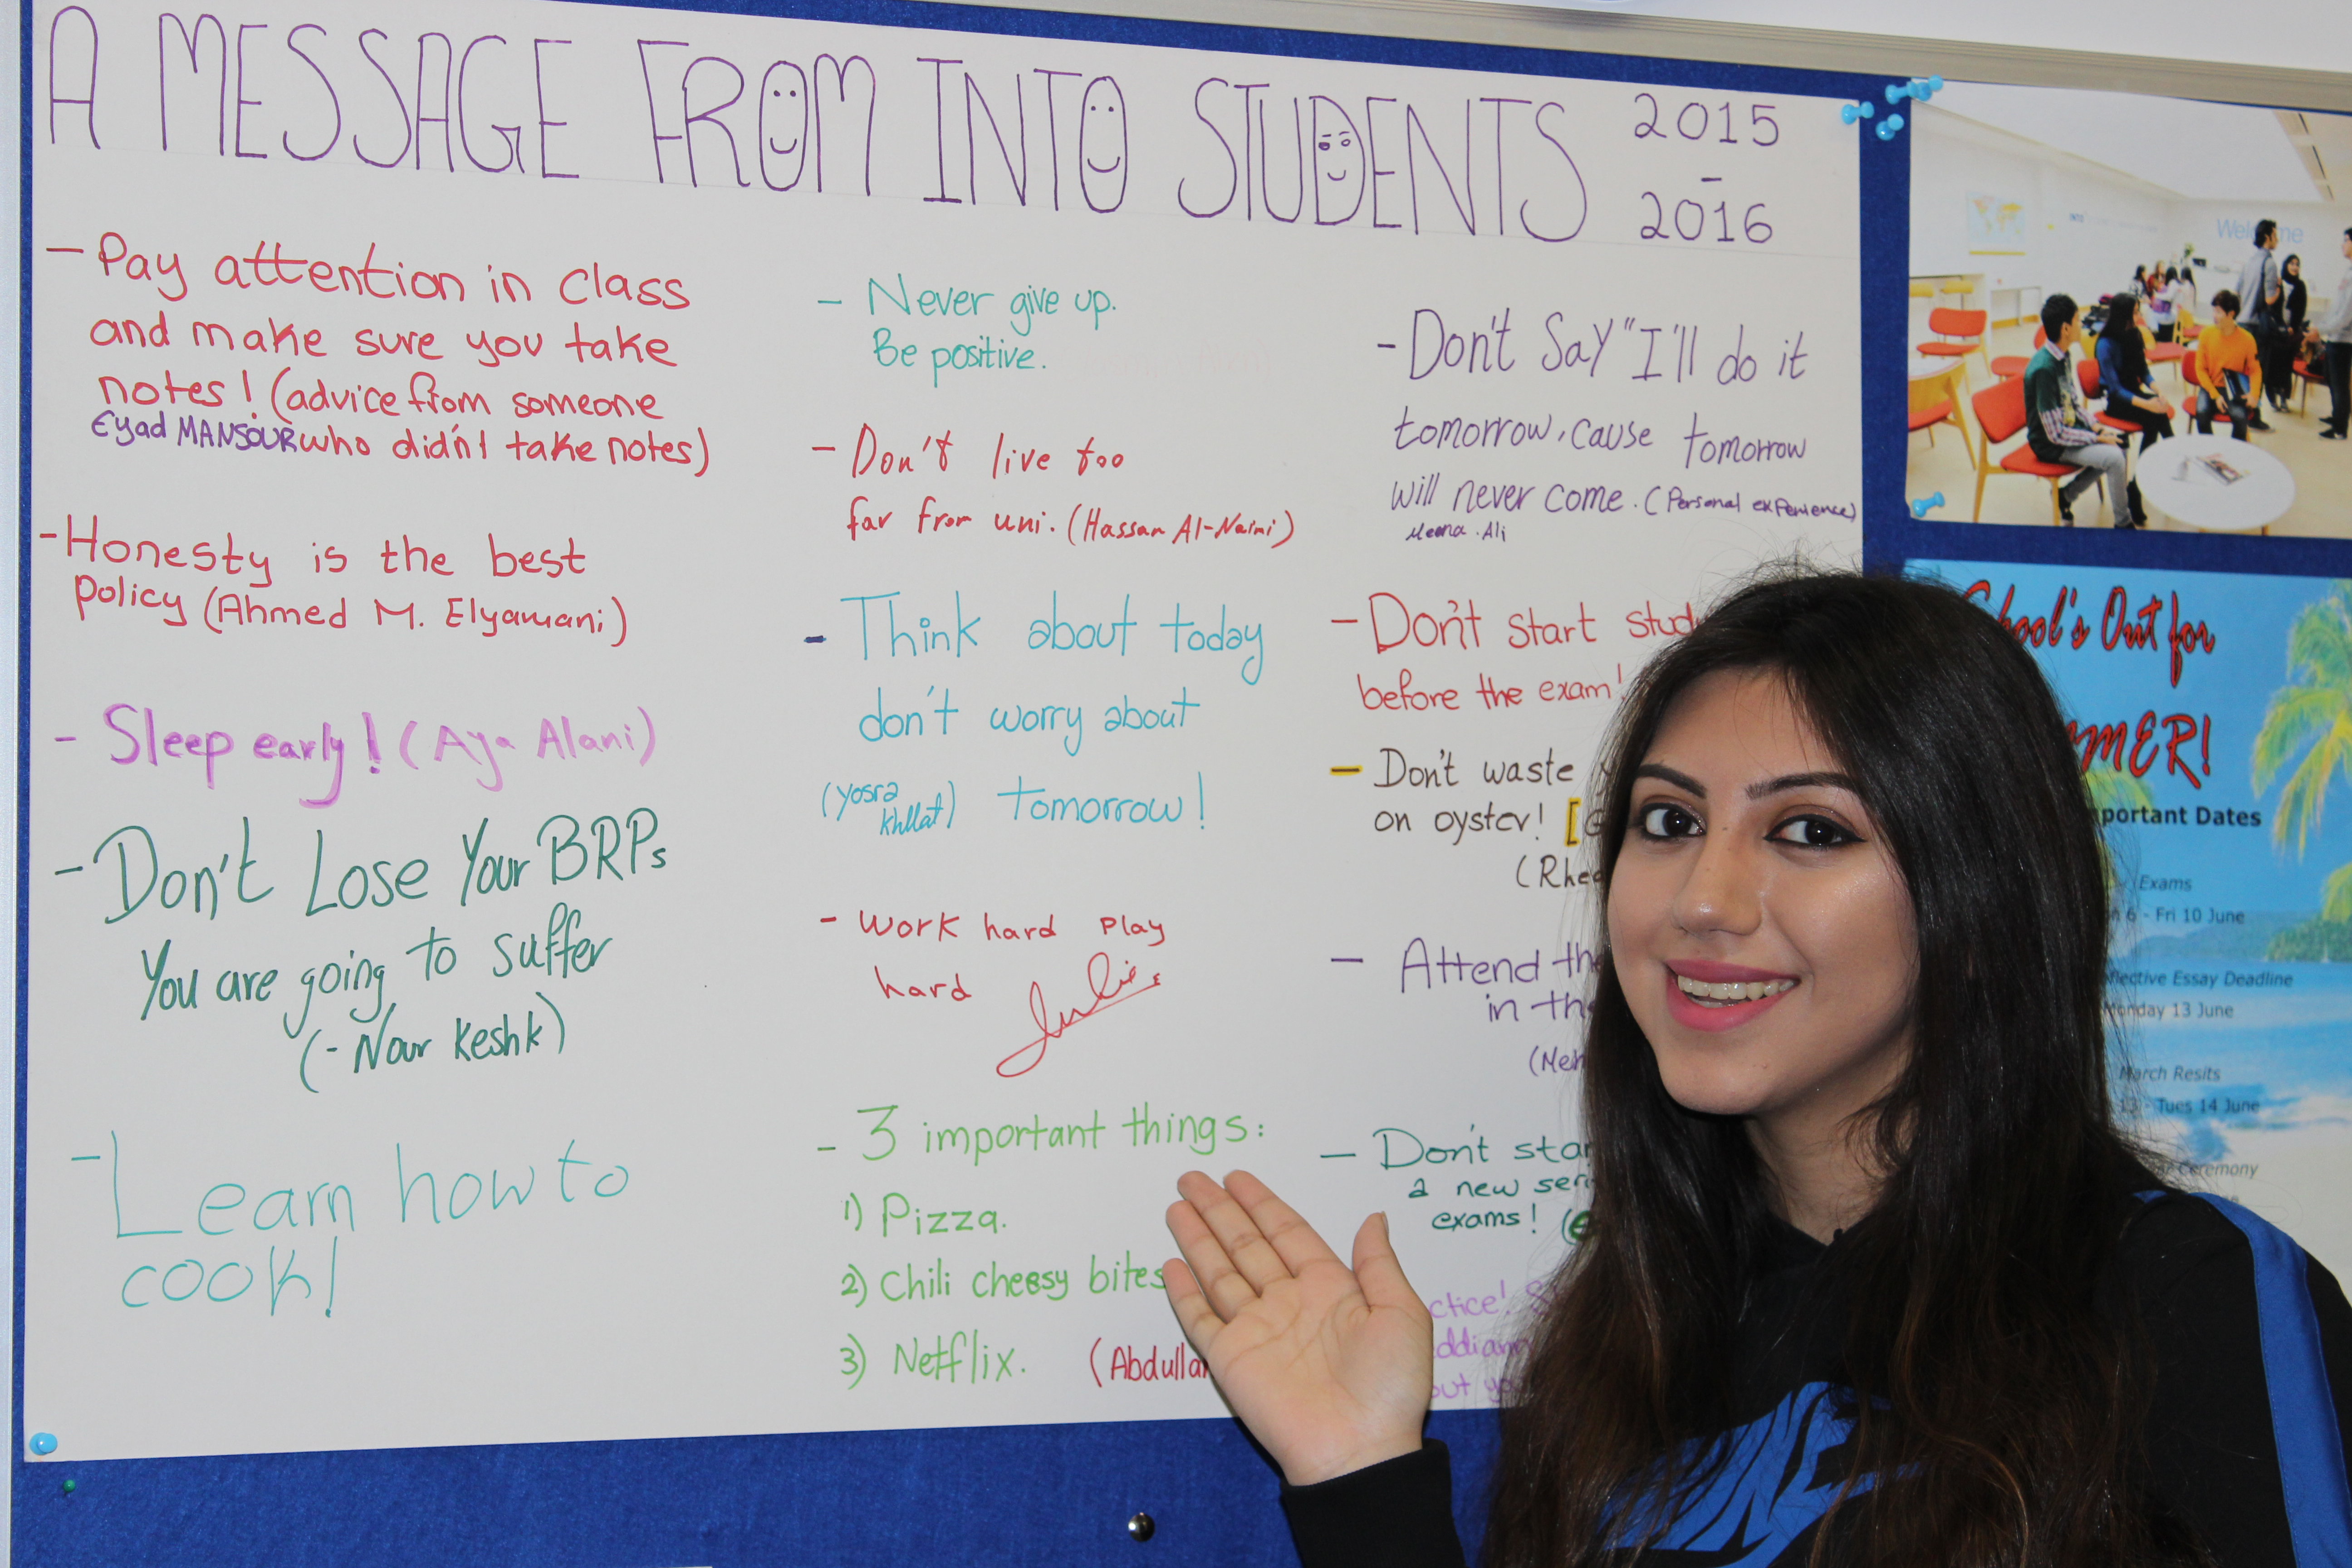 International Foundation students message board